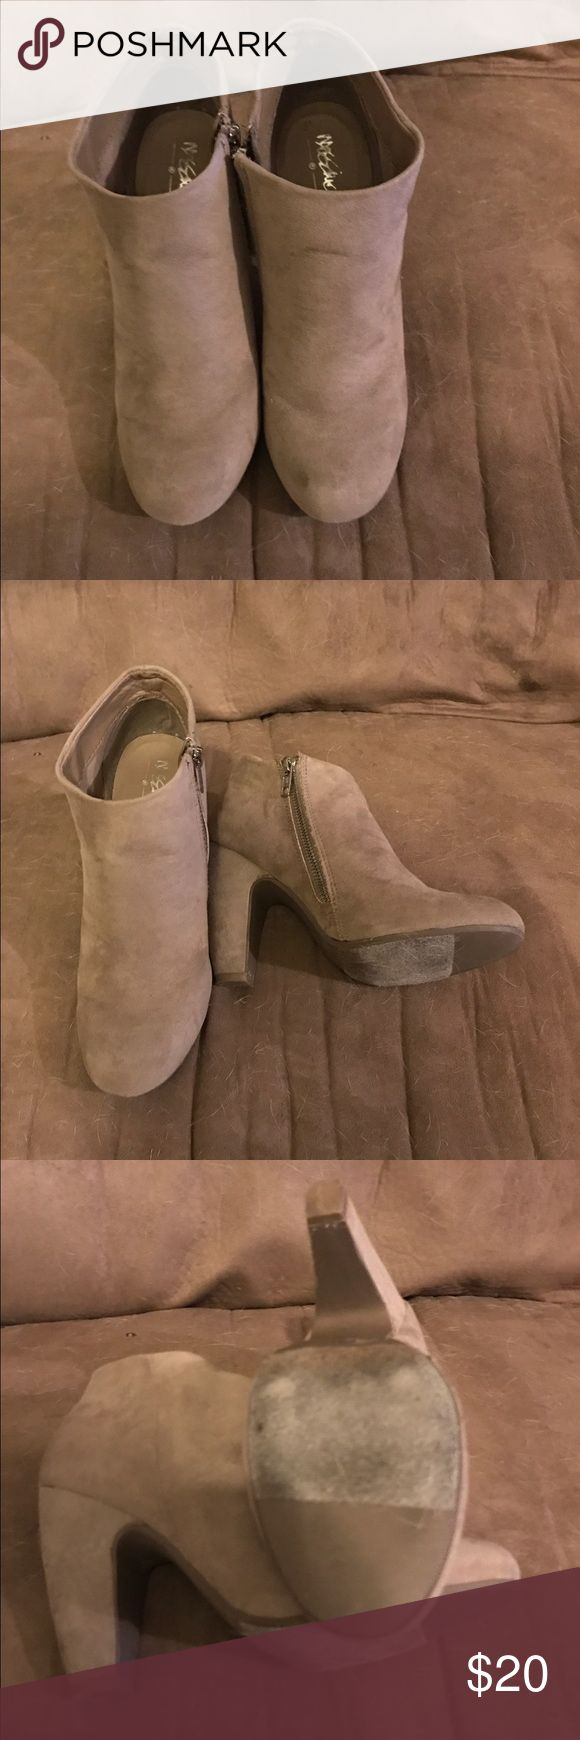 Mossimo Taupe Suede Ankle Boots Great neutral ankle boots in GUC. Small scuff on toe. The color goes with everything. Mossimo Supply Co Shoes Ankle Boots & Booties